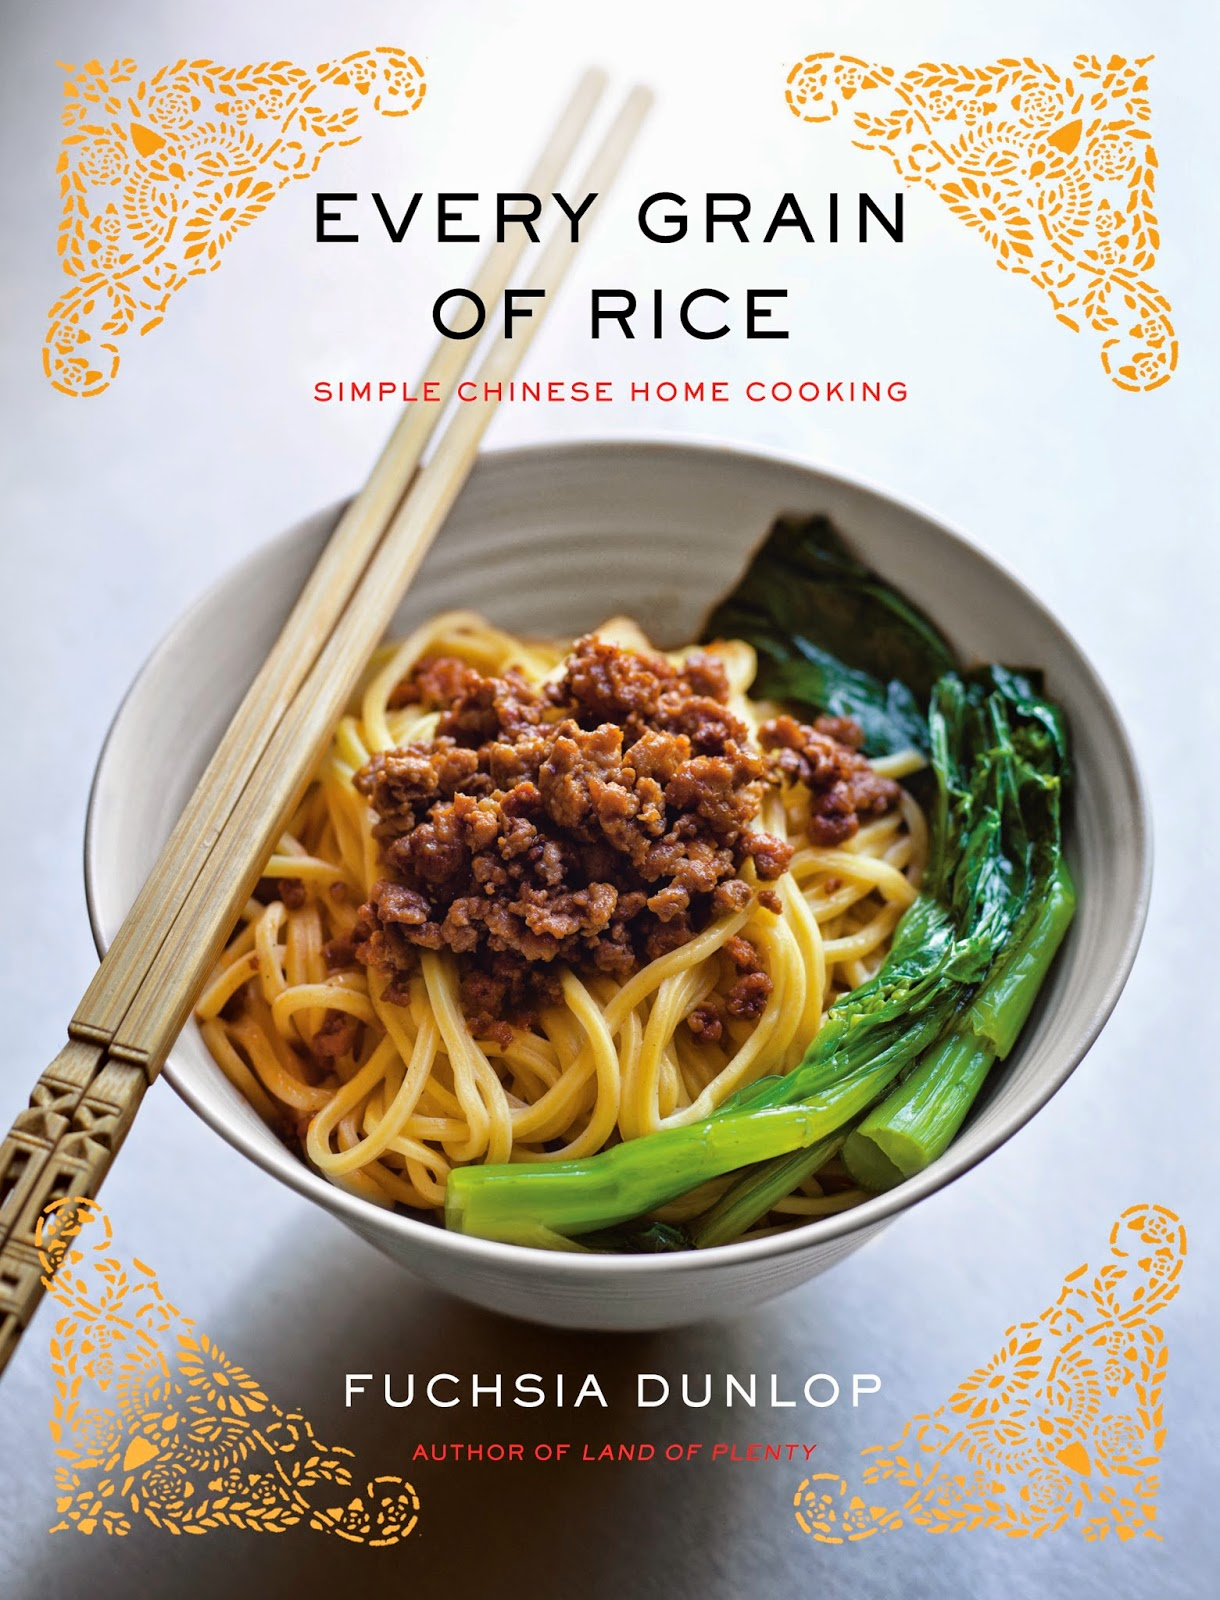 http://discover.halifaxpubliclibraries.ca/?q=title:every%20grain%20of%20rice%20simple